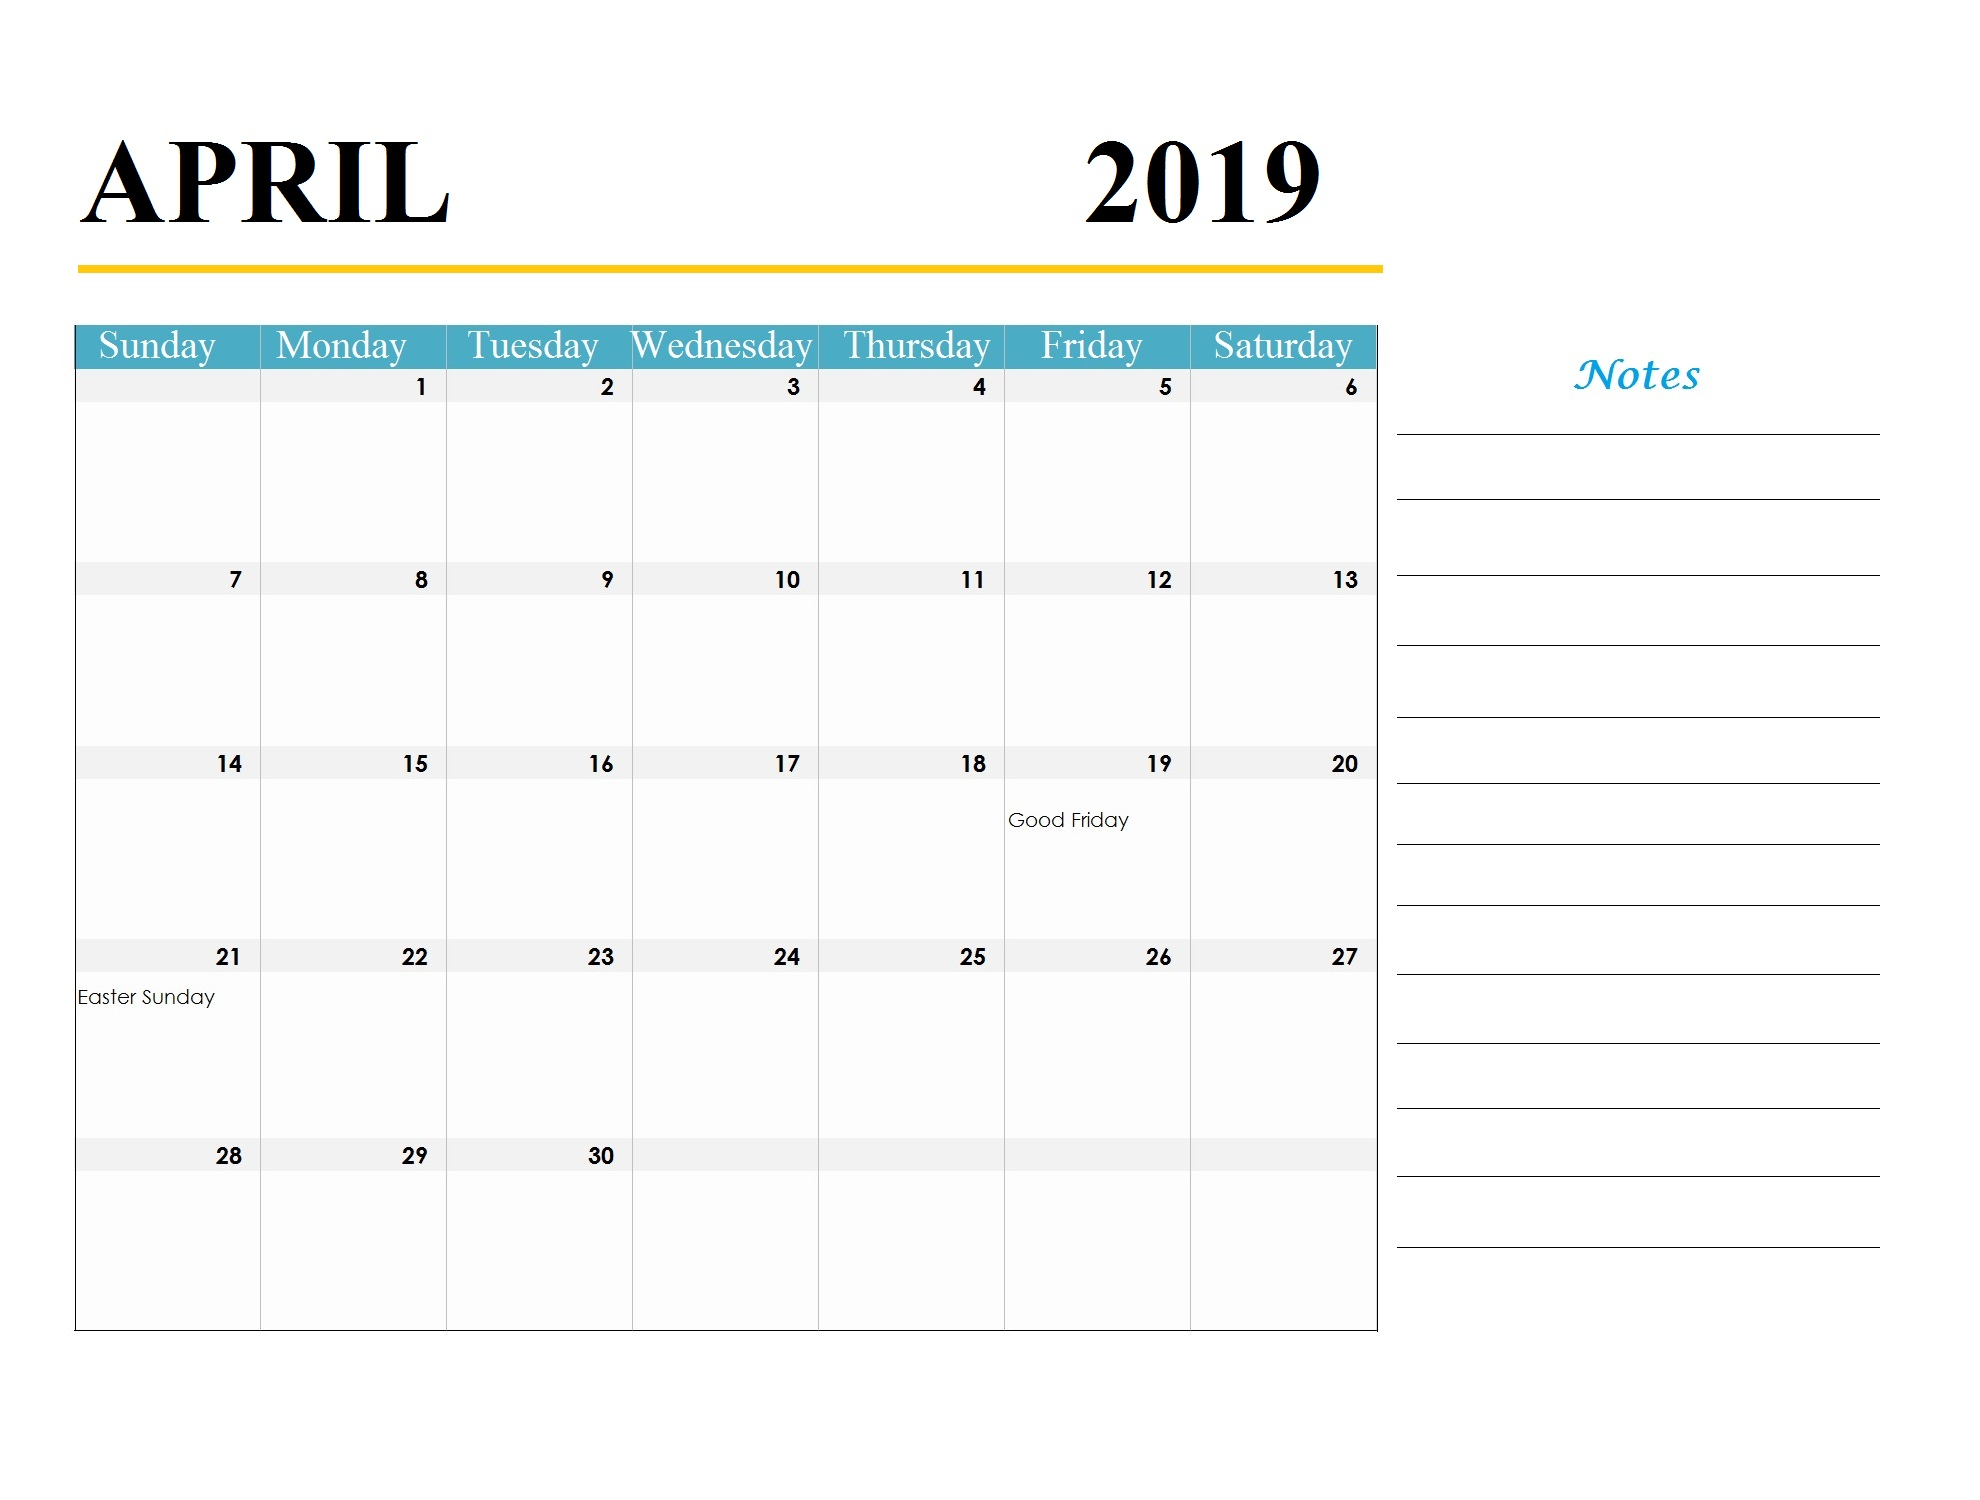 April 2019 Holidays Calendar Template